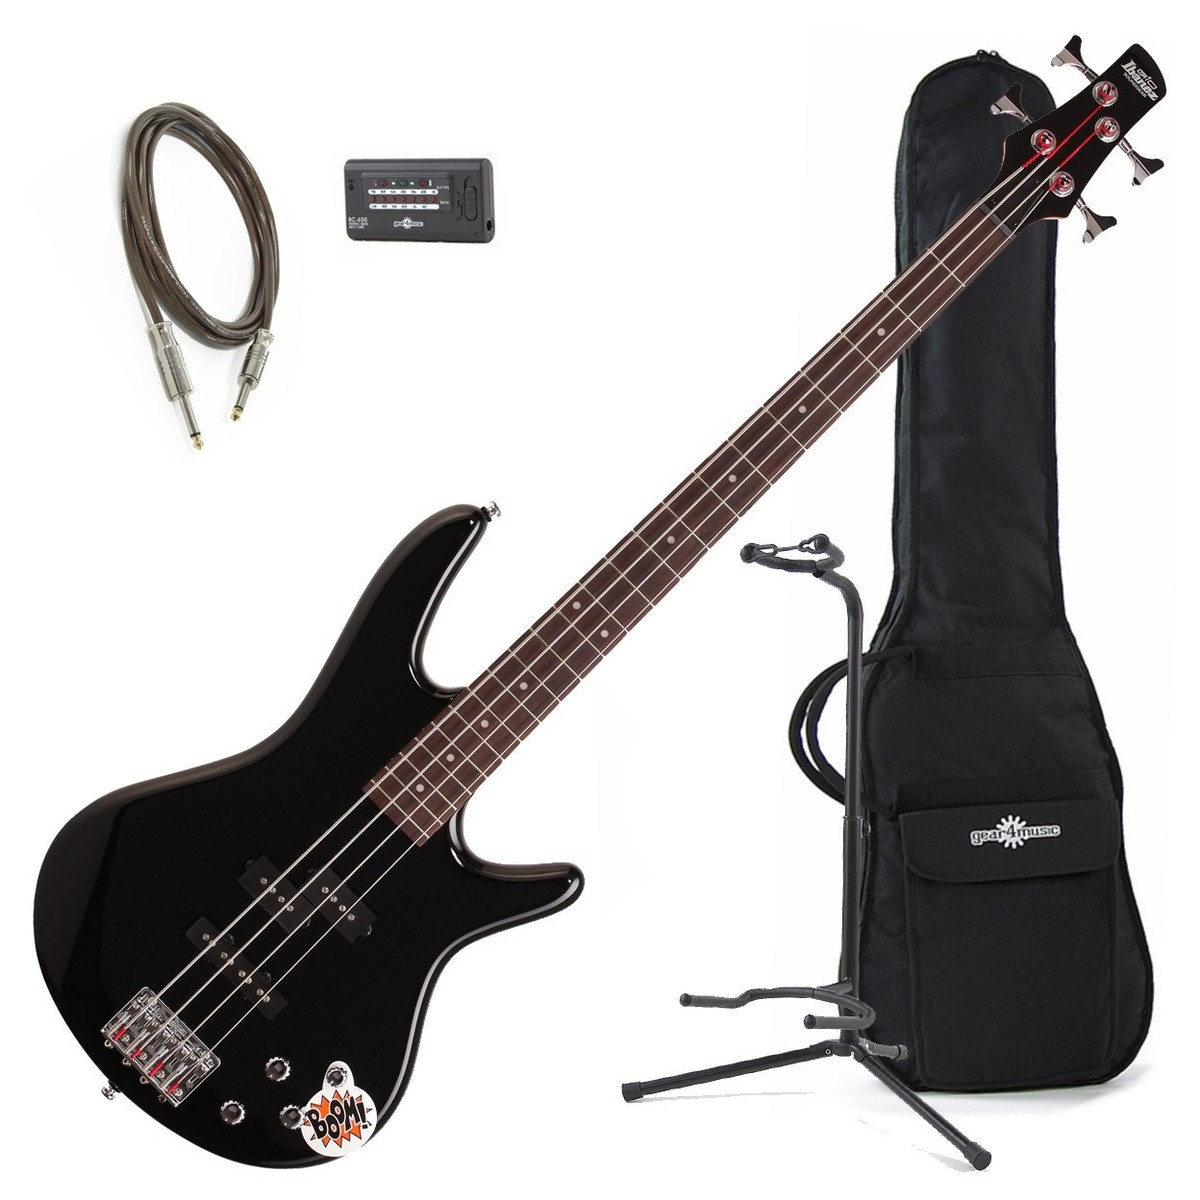 Ibanez GSR200 Gio Bass Guitar Bundle, Black at Gear4music.com